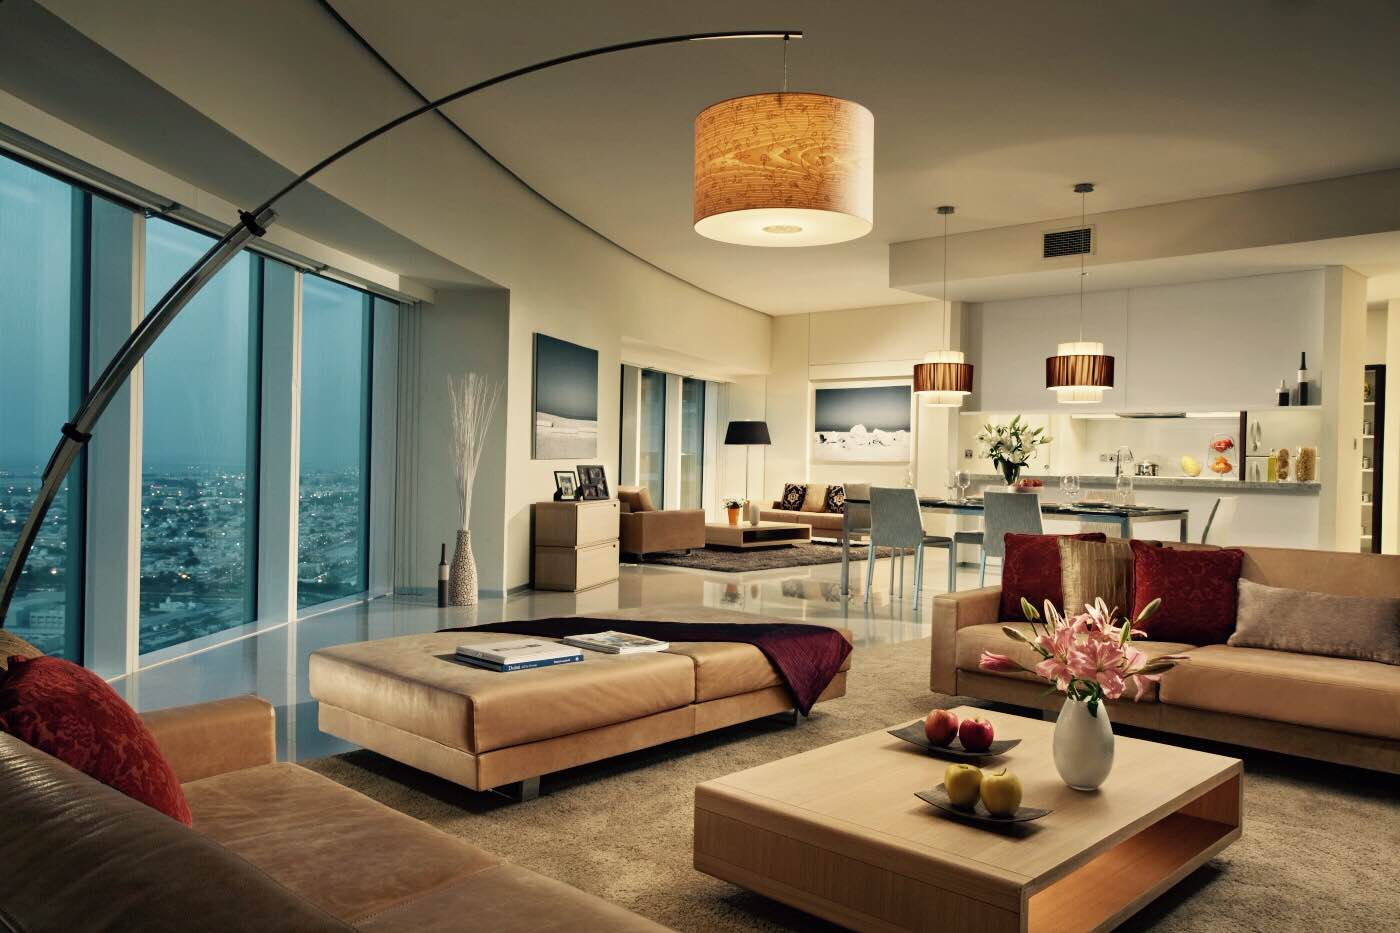 Serviced Apartments Dubai - See the full range available today